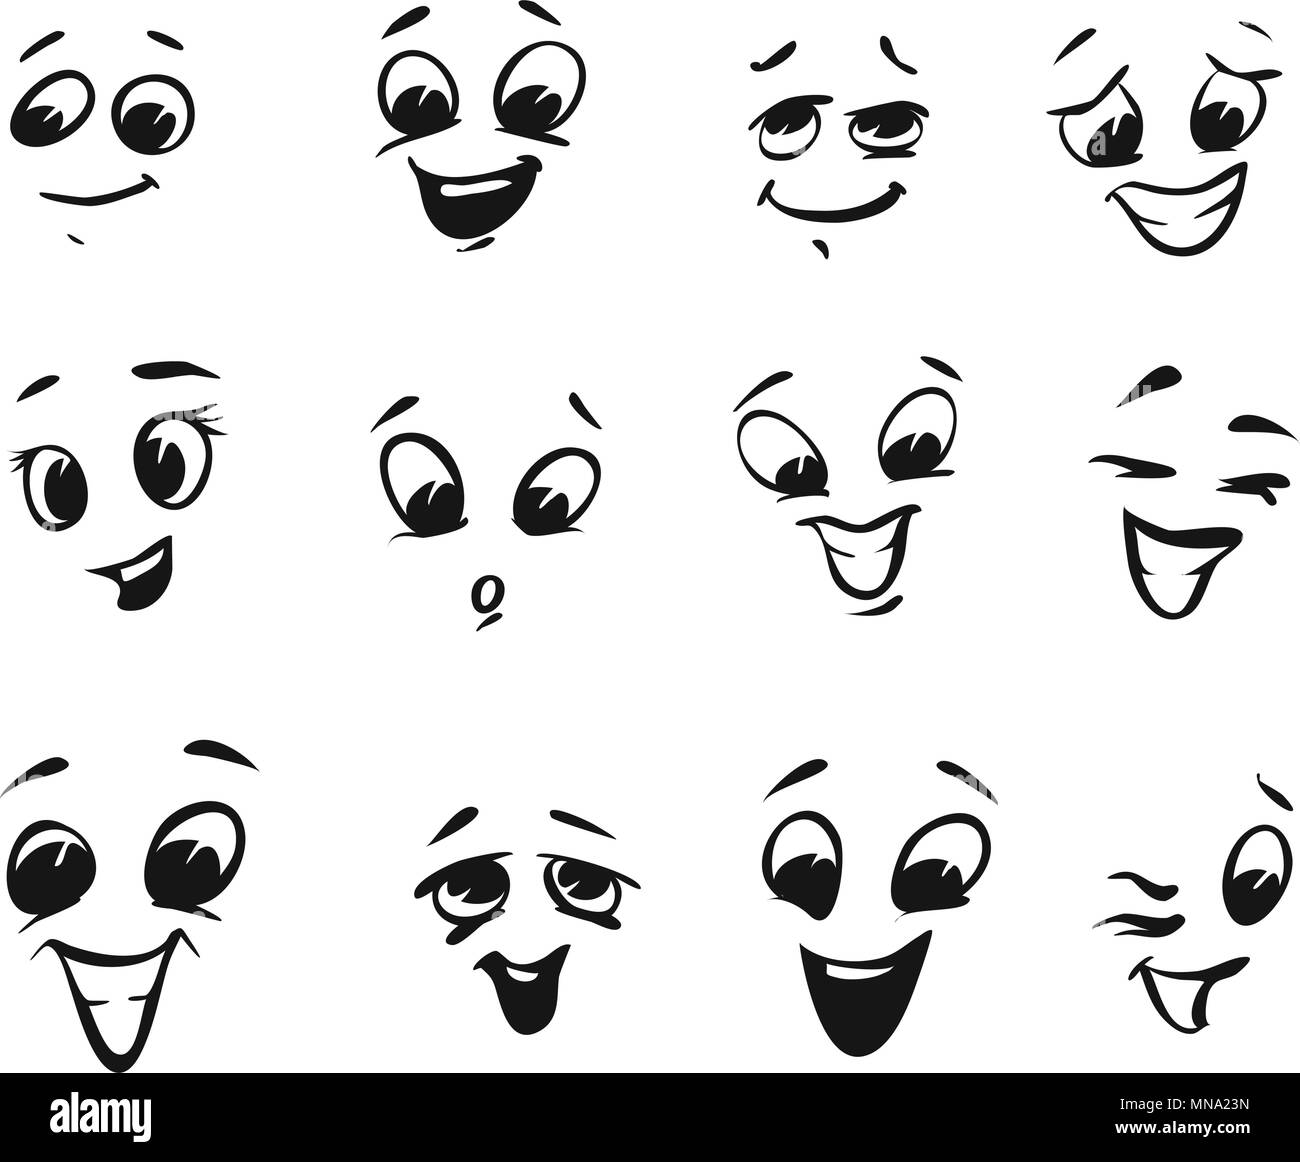 happy smiling and laughing cartoon faces tiny illustrations with rh alamy com Eyes Looking Clip Art Surprised Eyes Clip Art